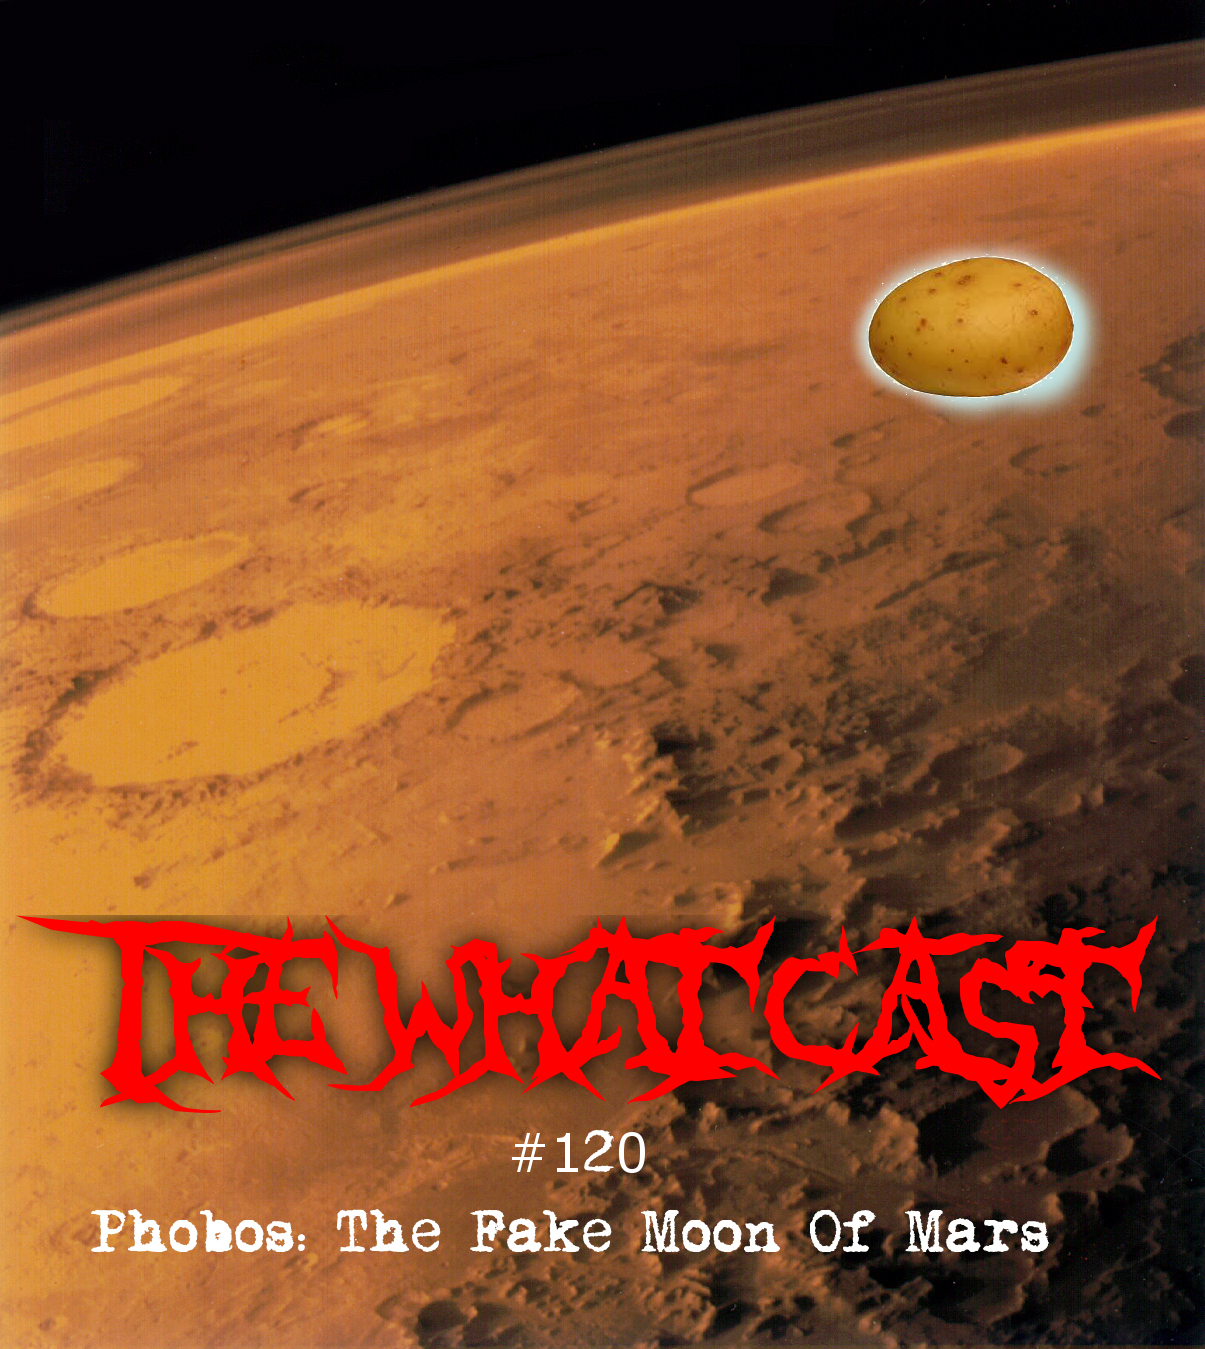 The What Cast #120 - Phobos: The Fake Moon Of Mars